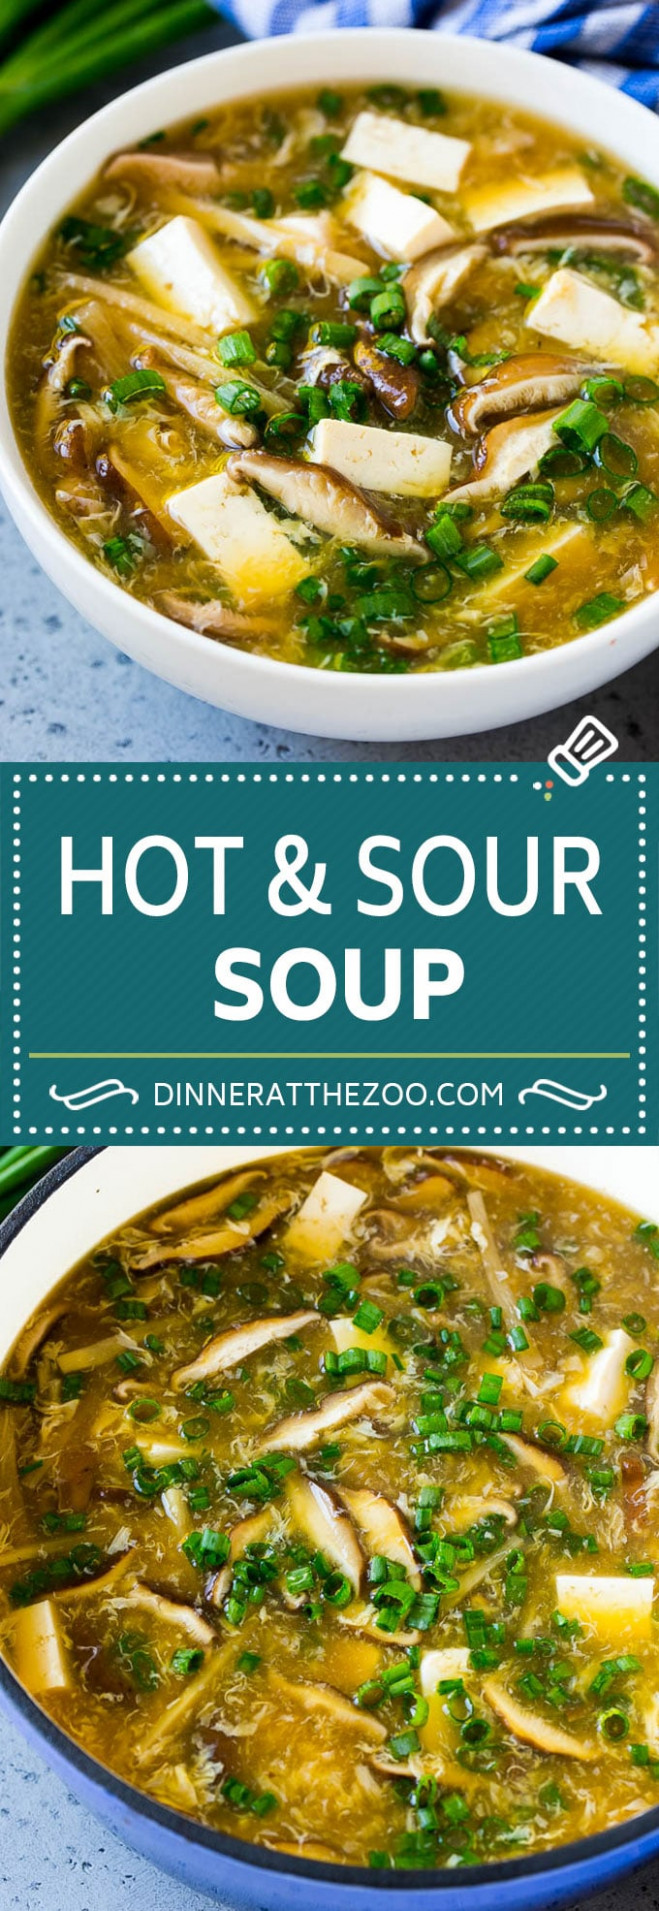 Hot and Sour Soup - Dinner at the Zoo - recipe vegetarian hot and sour soup